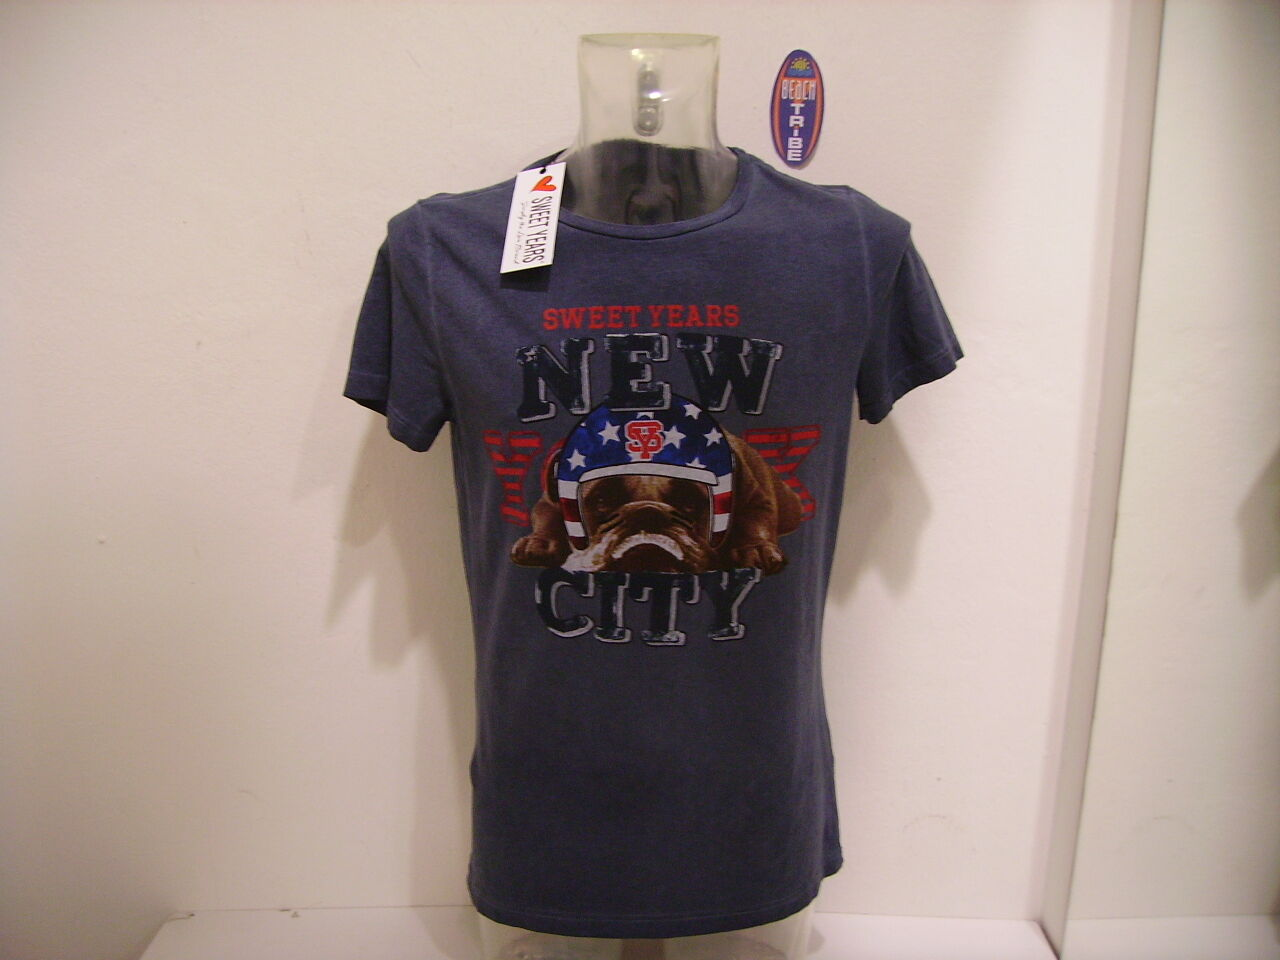 Sweet Years Men's T-Shirt JERSEY M short Syu833 bluee Capo Washed L